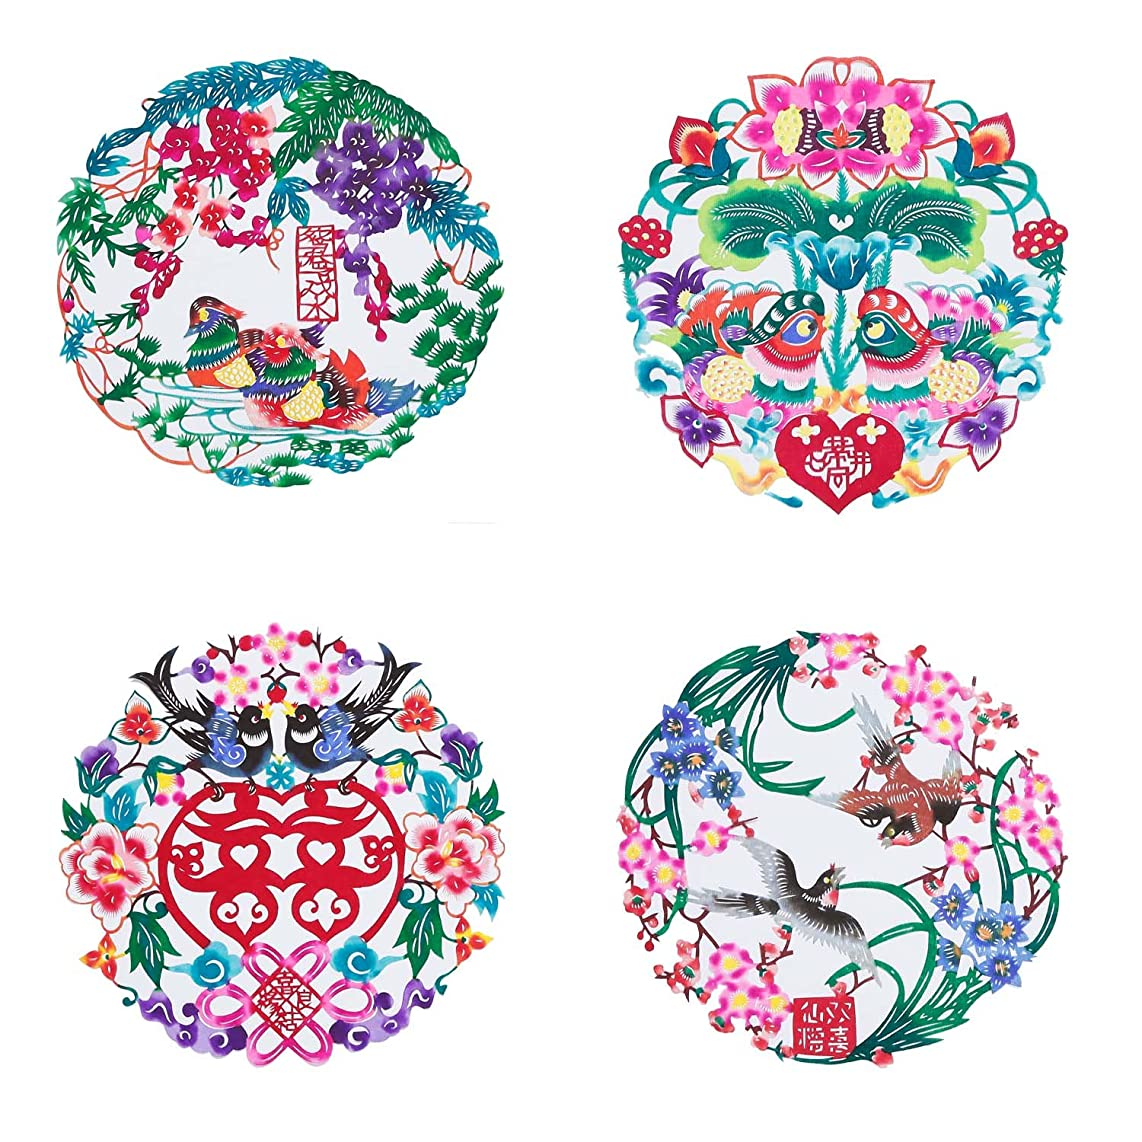 Shayier China Intangible Cultural Heritage - Chinese Color Handmade Paper-cut (Flower & Bird_Love)